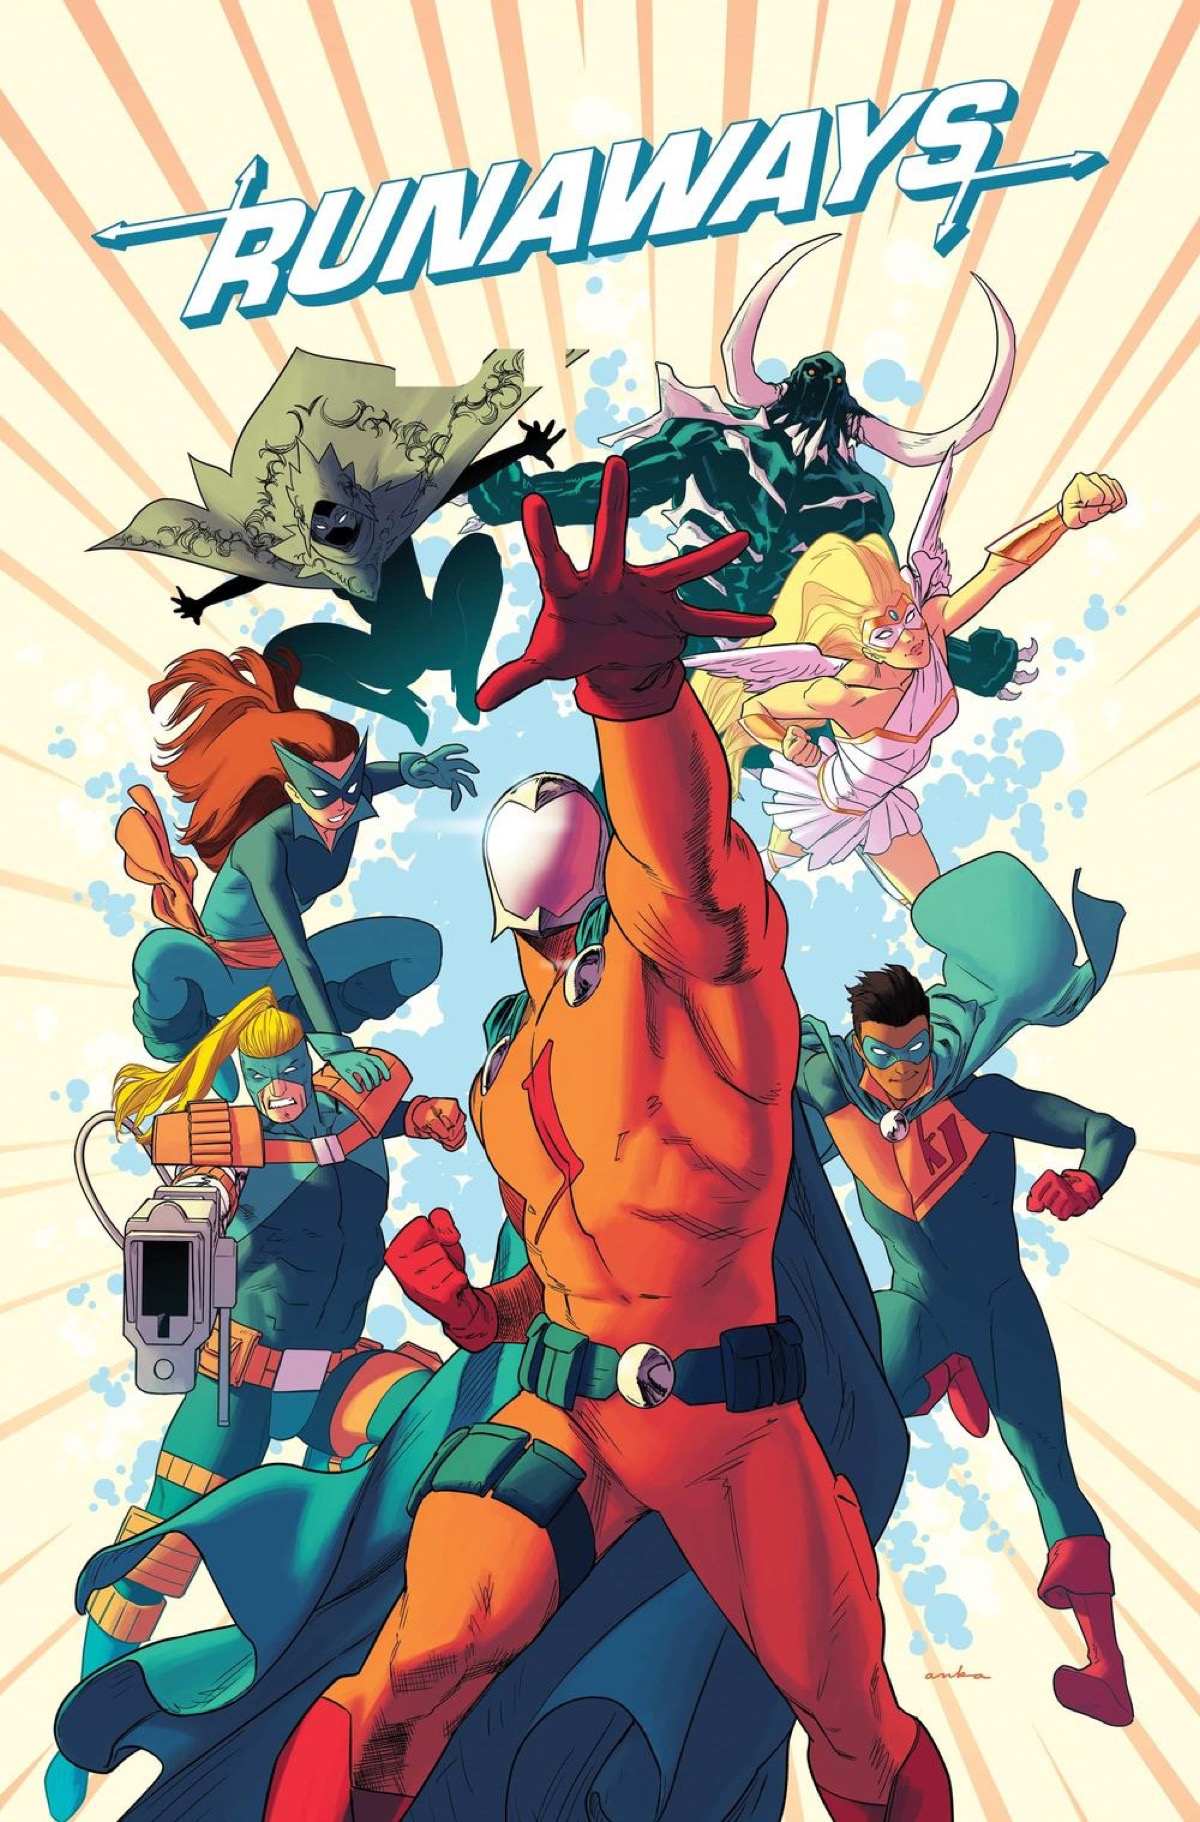 Marvel's Runaways Become Doc Justice and the J-Team in November